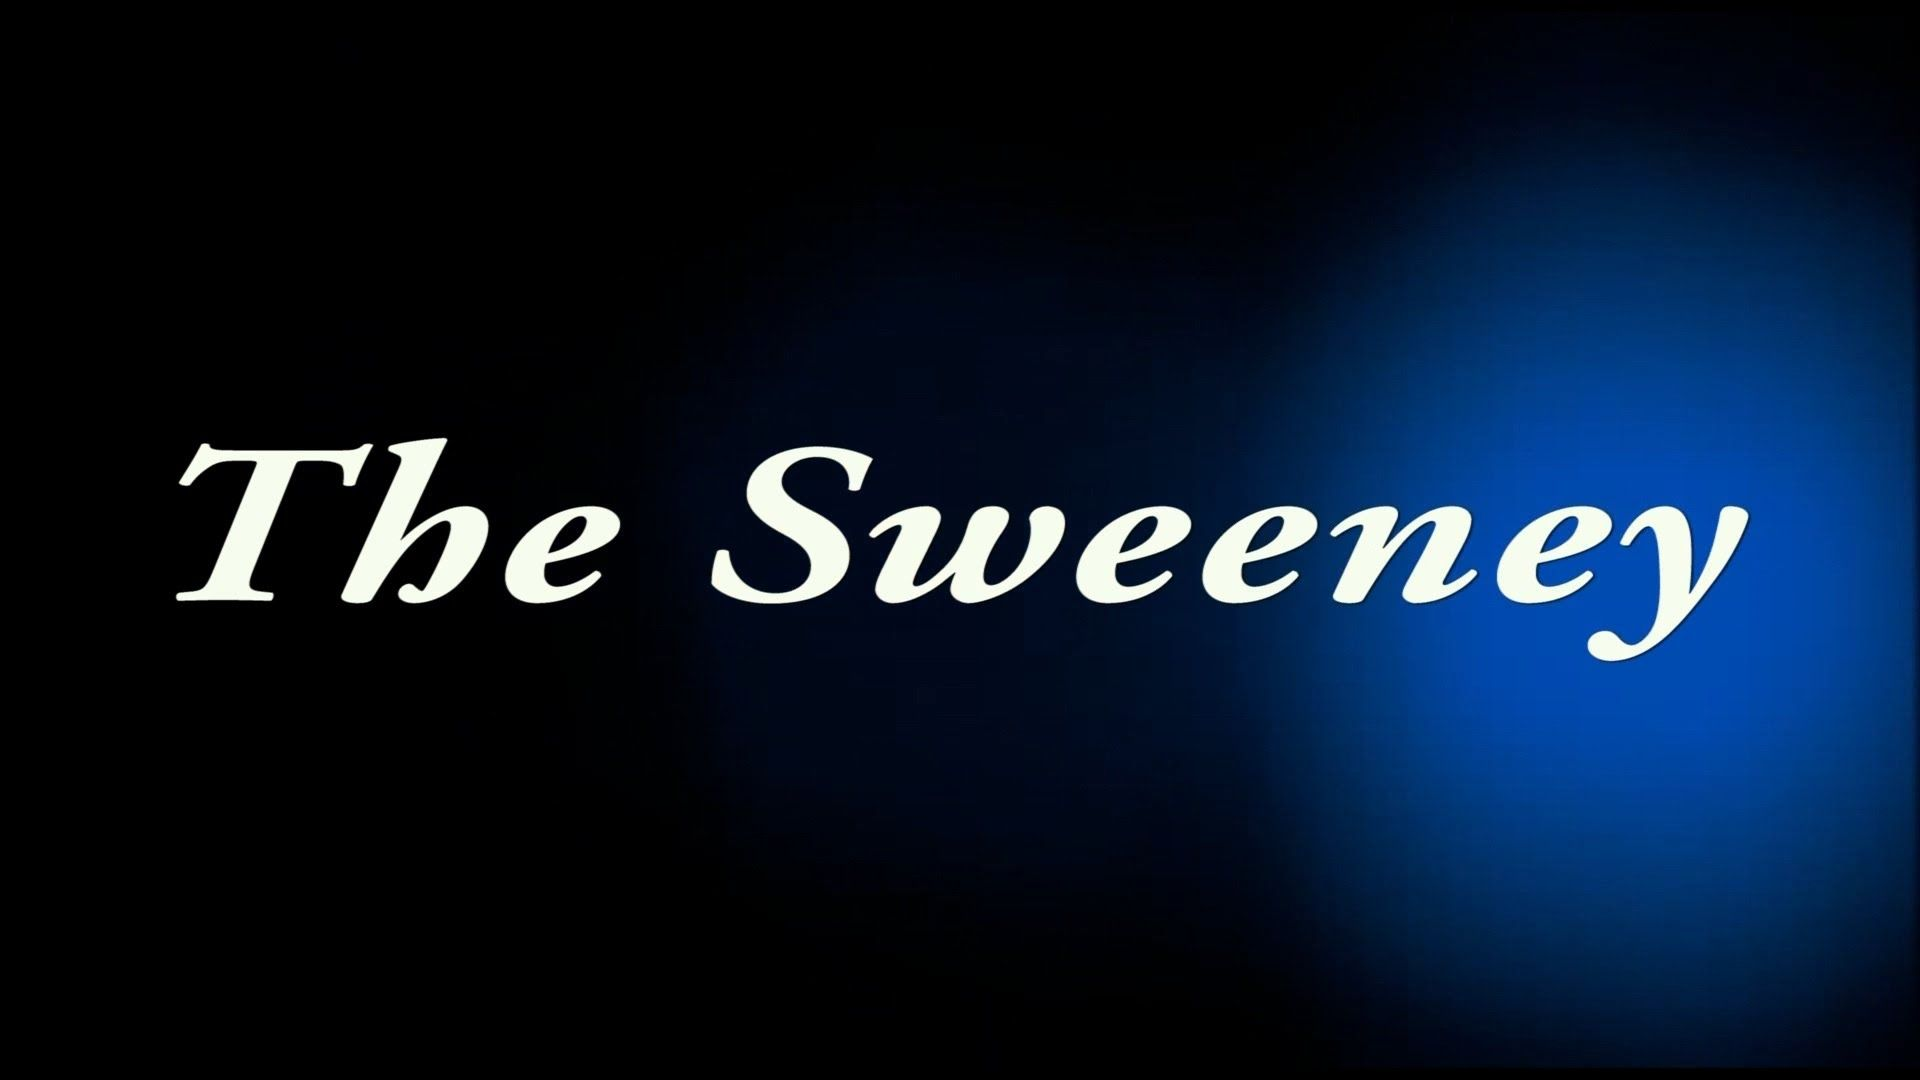 The Sweeney Movie Review (2012) Action Film  PopcornCinemaShow reviews the film The Sweeney  Movie Reviews / Film Reviews / Action Movies / Action Films / Movies & Films  The Sweeney Movie Review  http://popcorncinemashow.tumblr.com/ https://www.youtube.com/user/PopcornCinemaShow